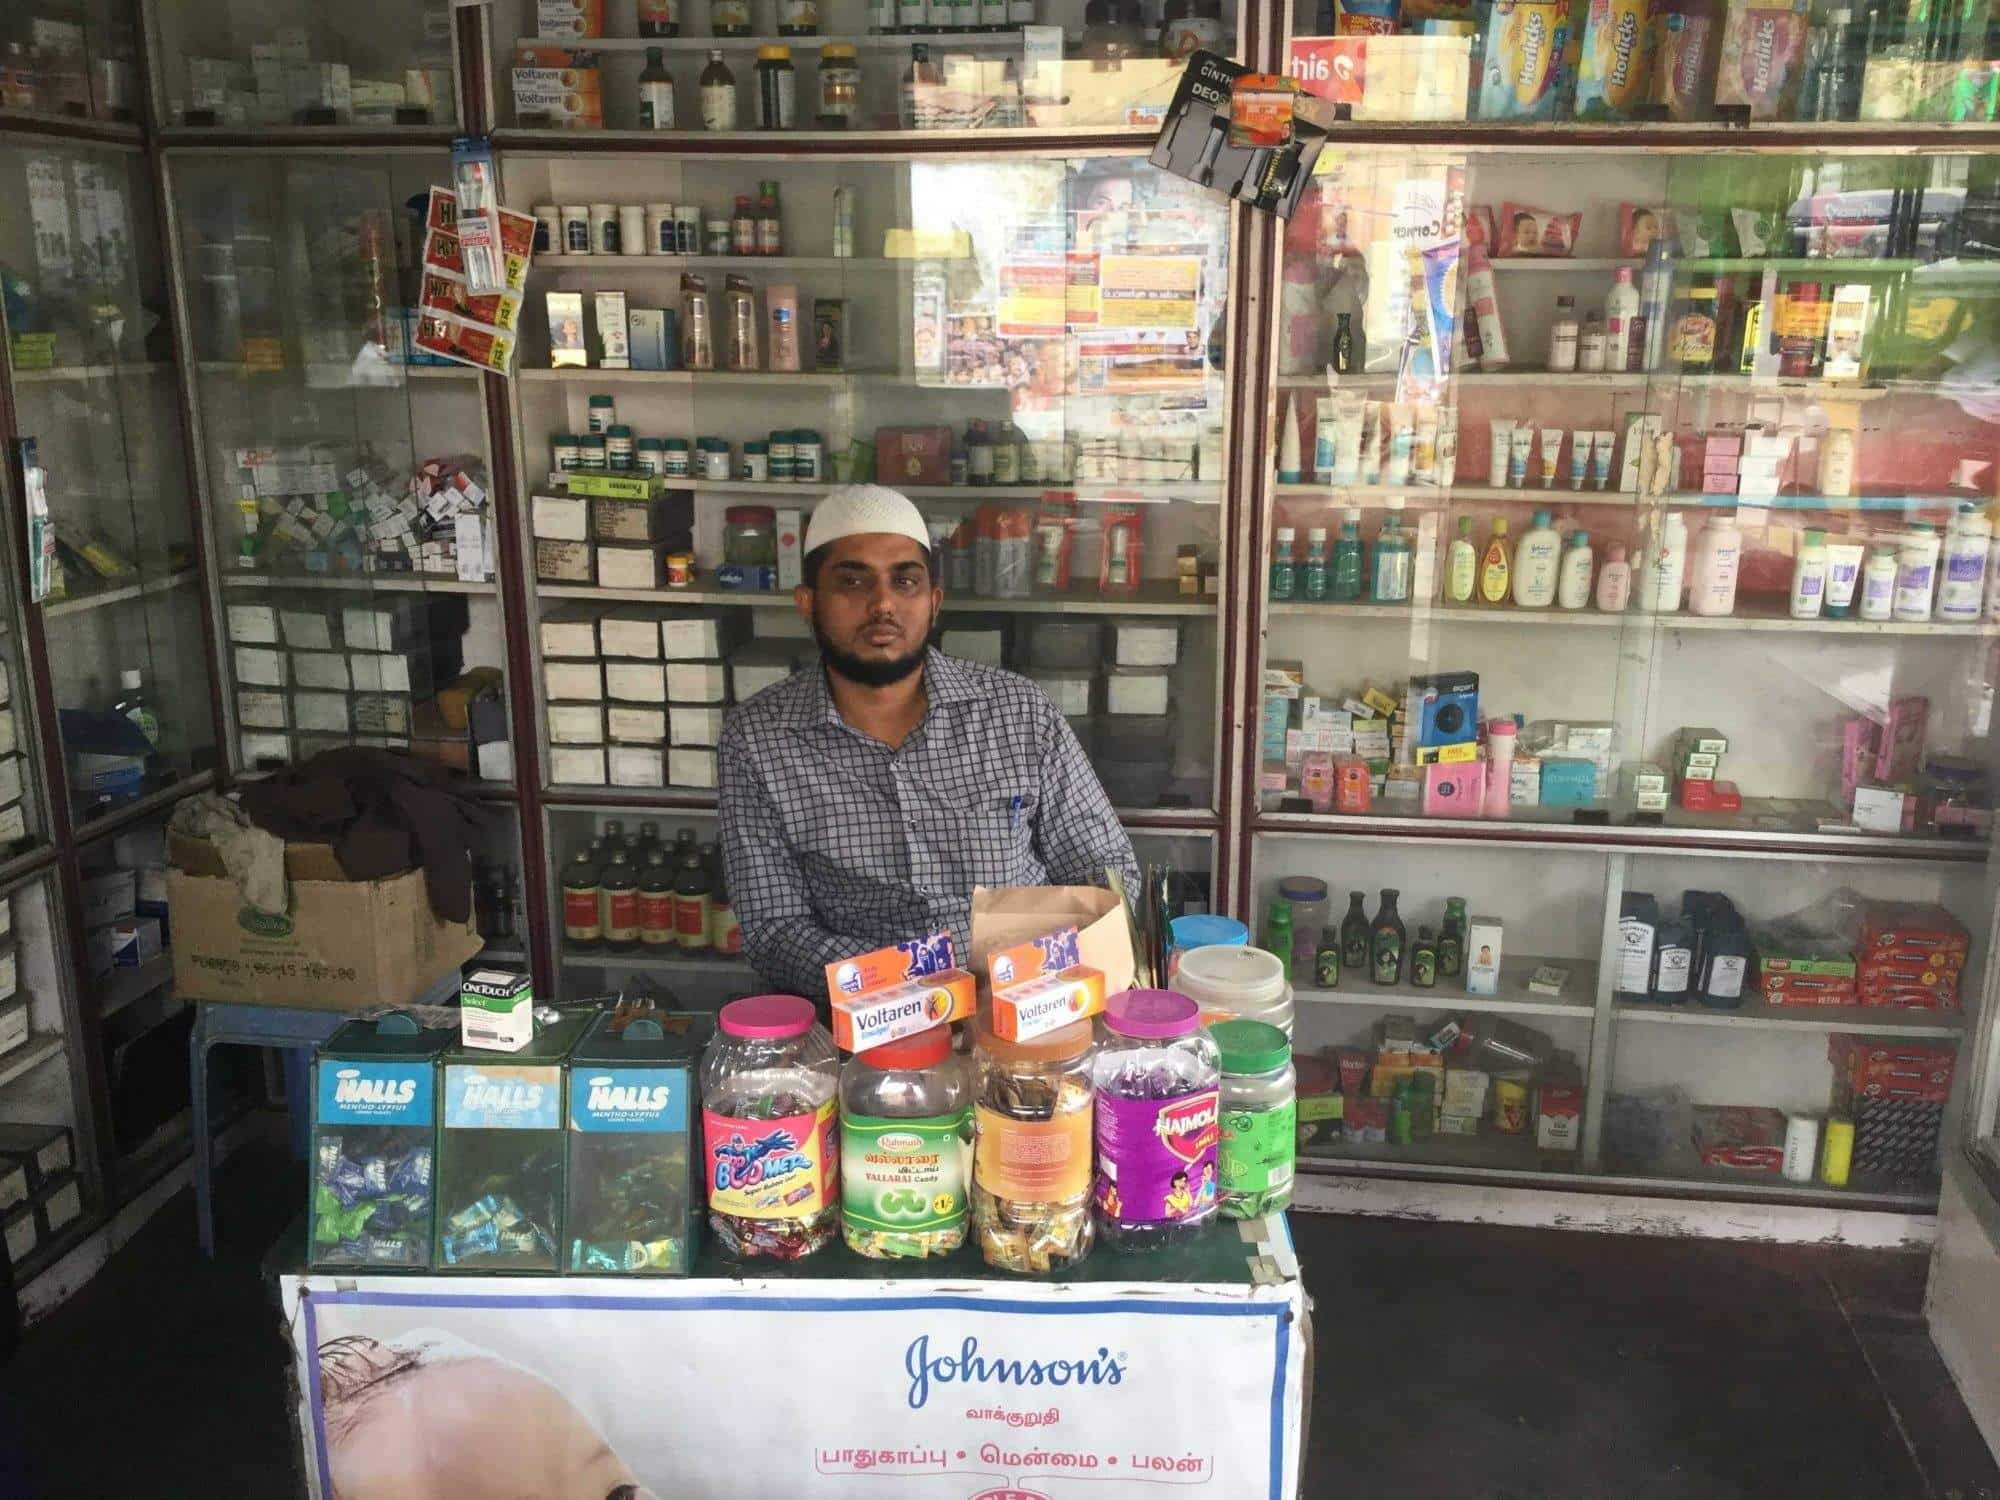 Tamilnadu pharmacy kitchipalayam chemists in salem justdial solutioingenieria Image collections